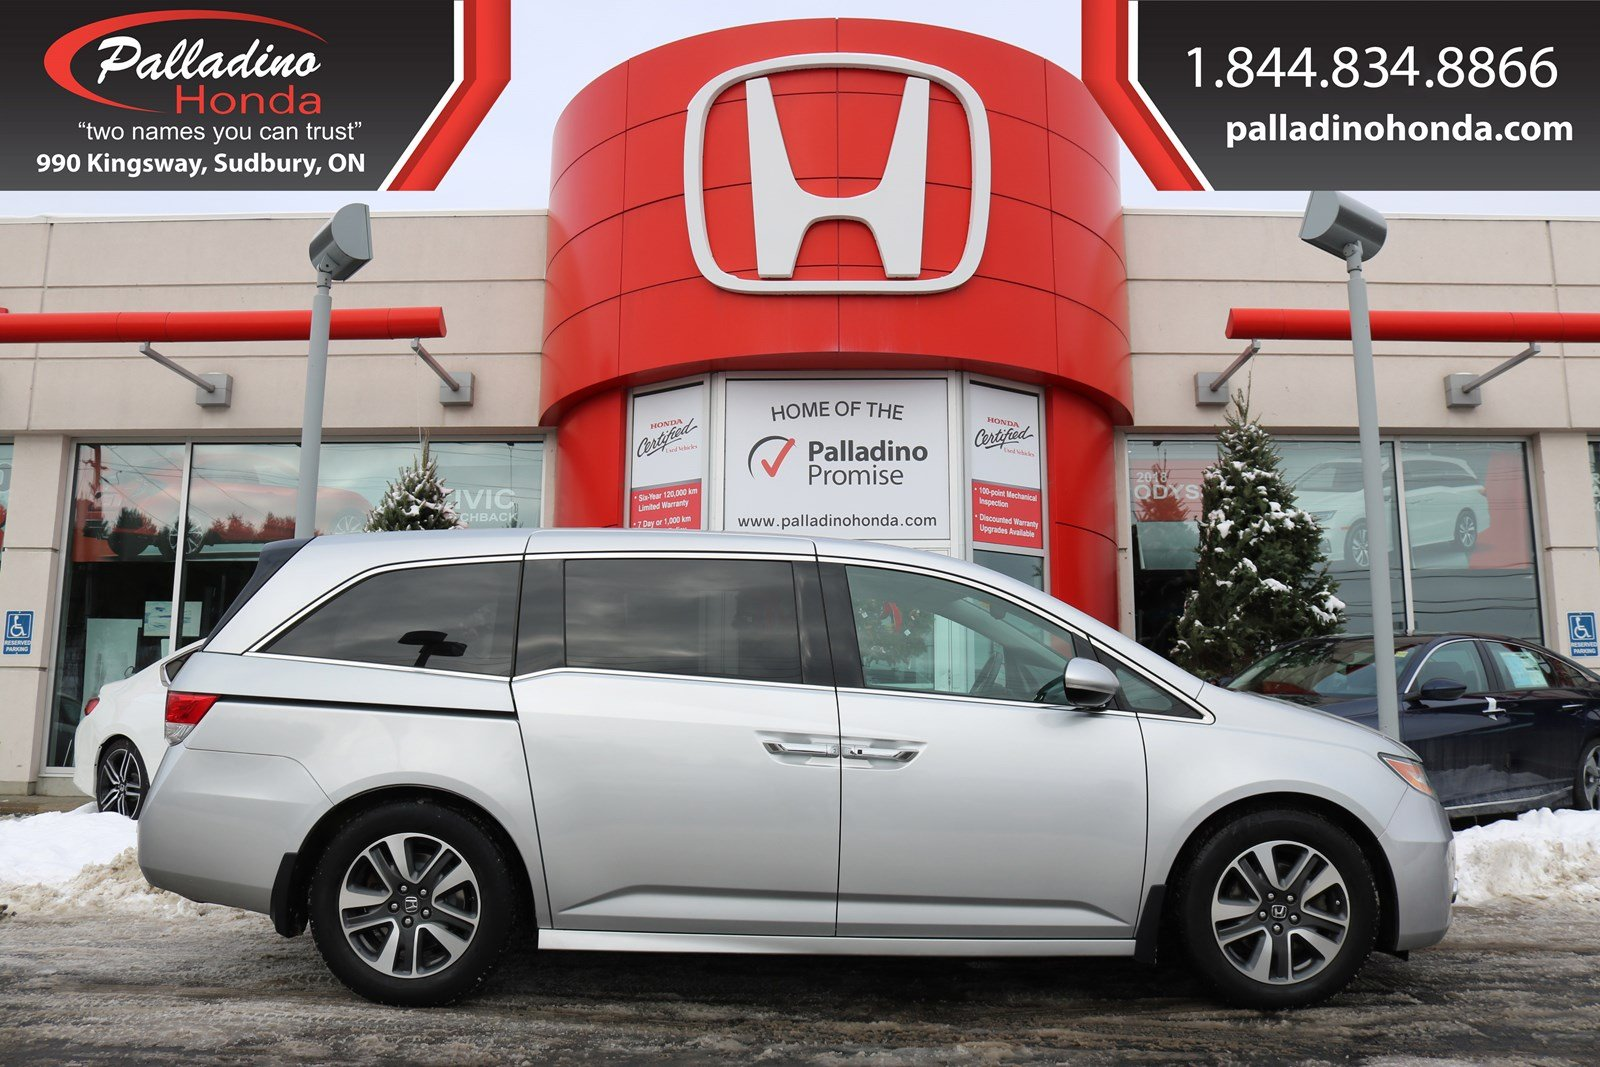 Pre-Owned 2014 Honda Odyssey Touring - NEW BRAKES - NAVIGATION & BACK UP  CAMERA